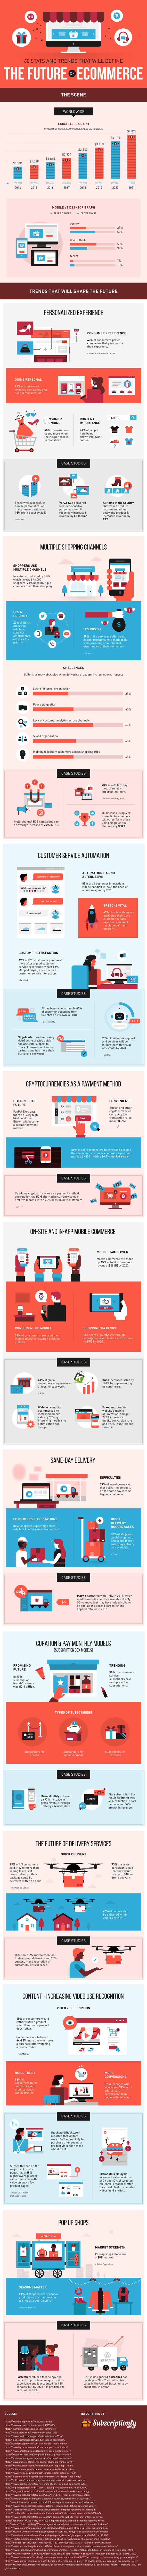 60 E-commerce Trends that Might Shape the Future of Online Shopping 1